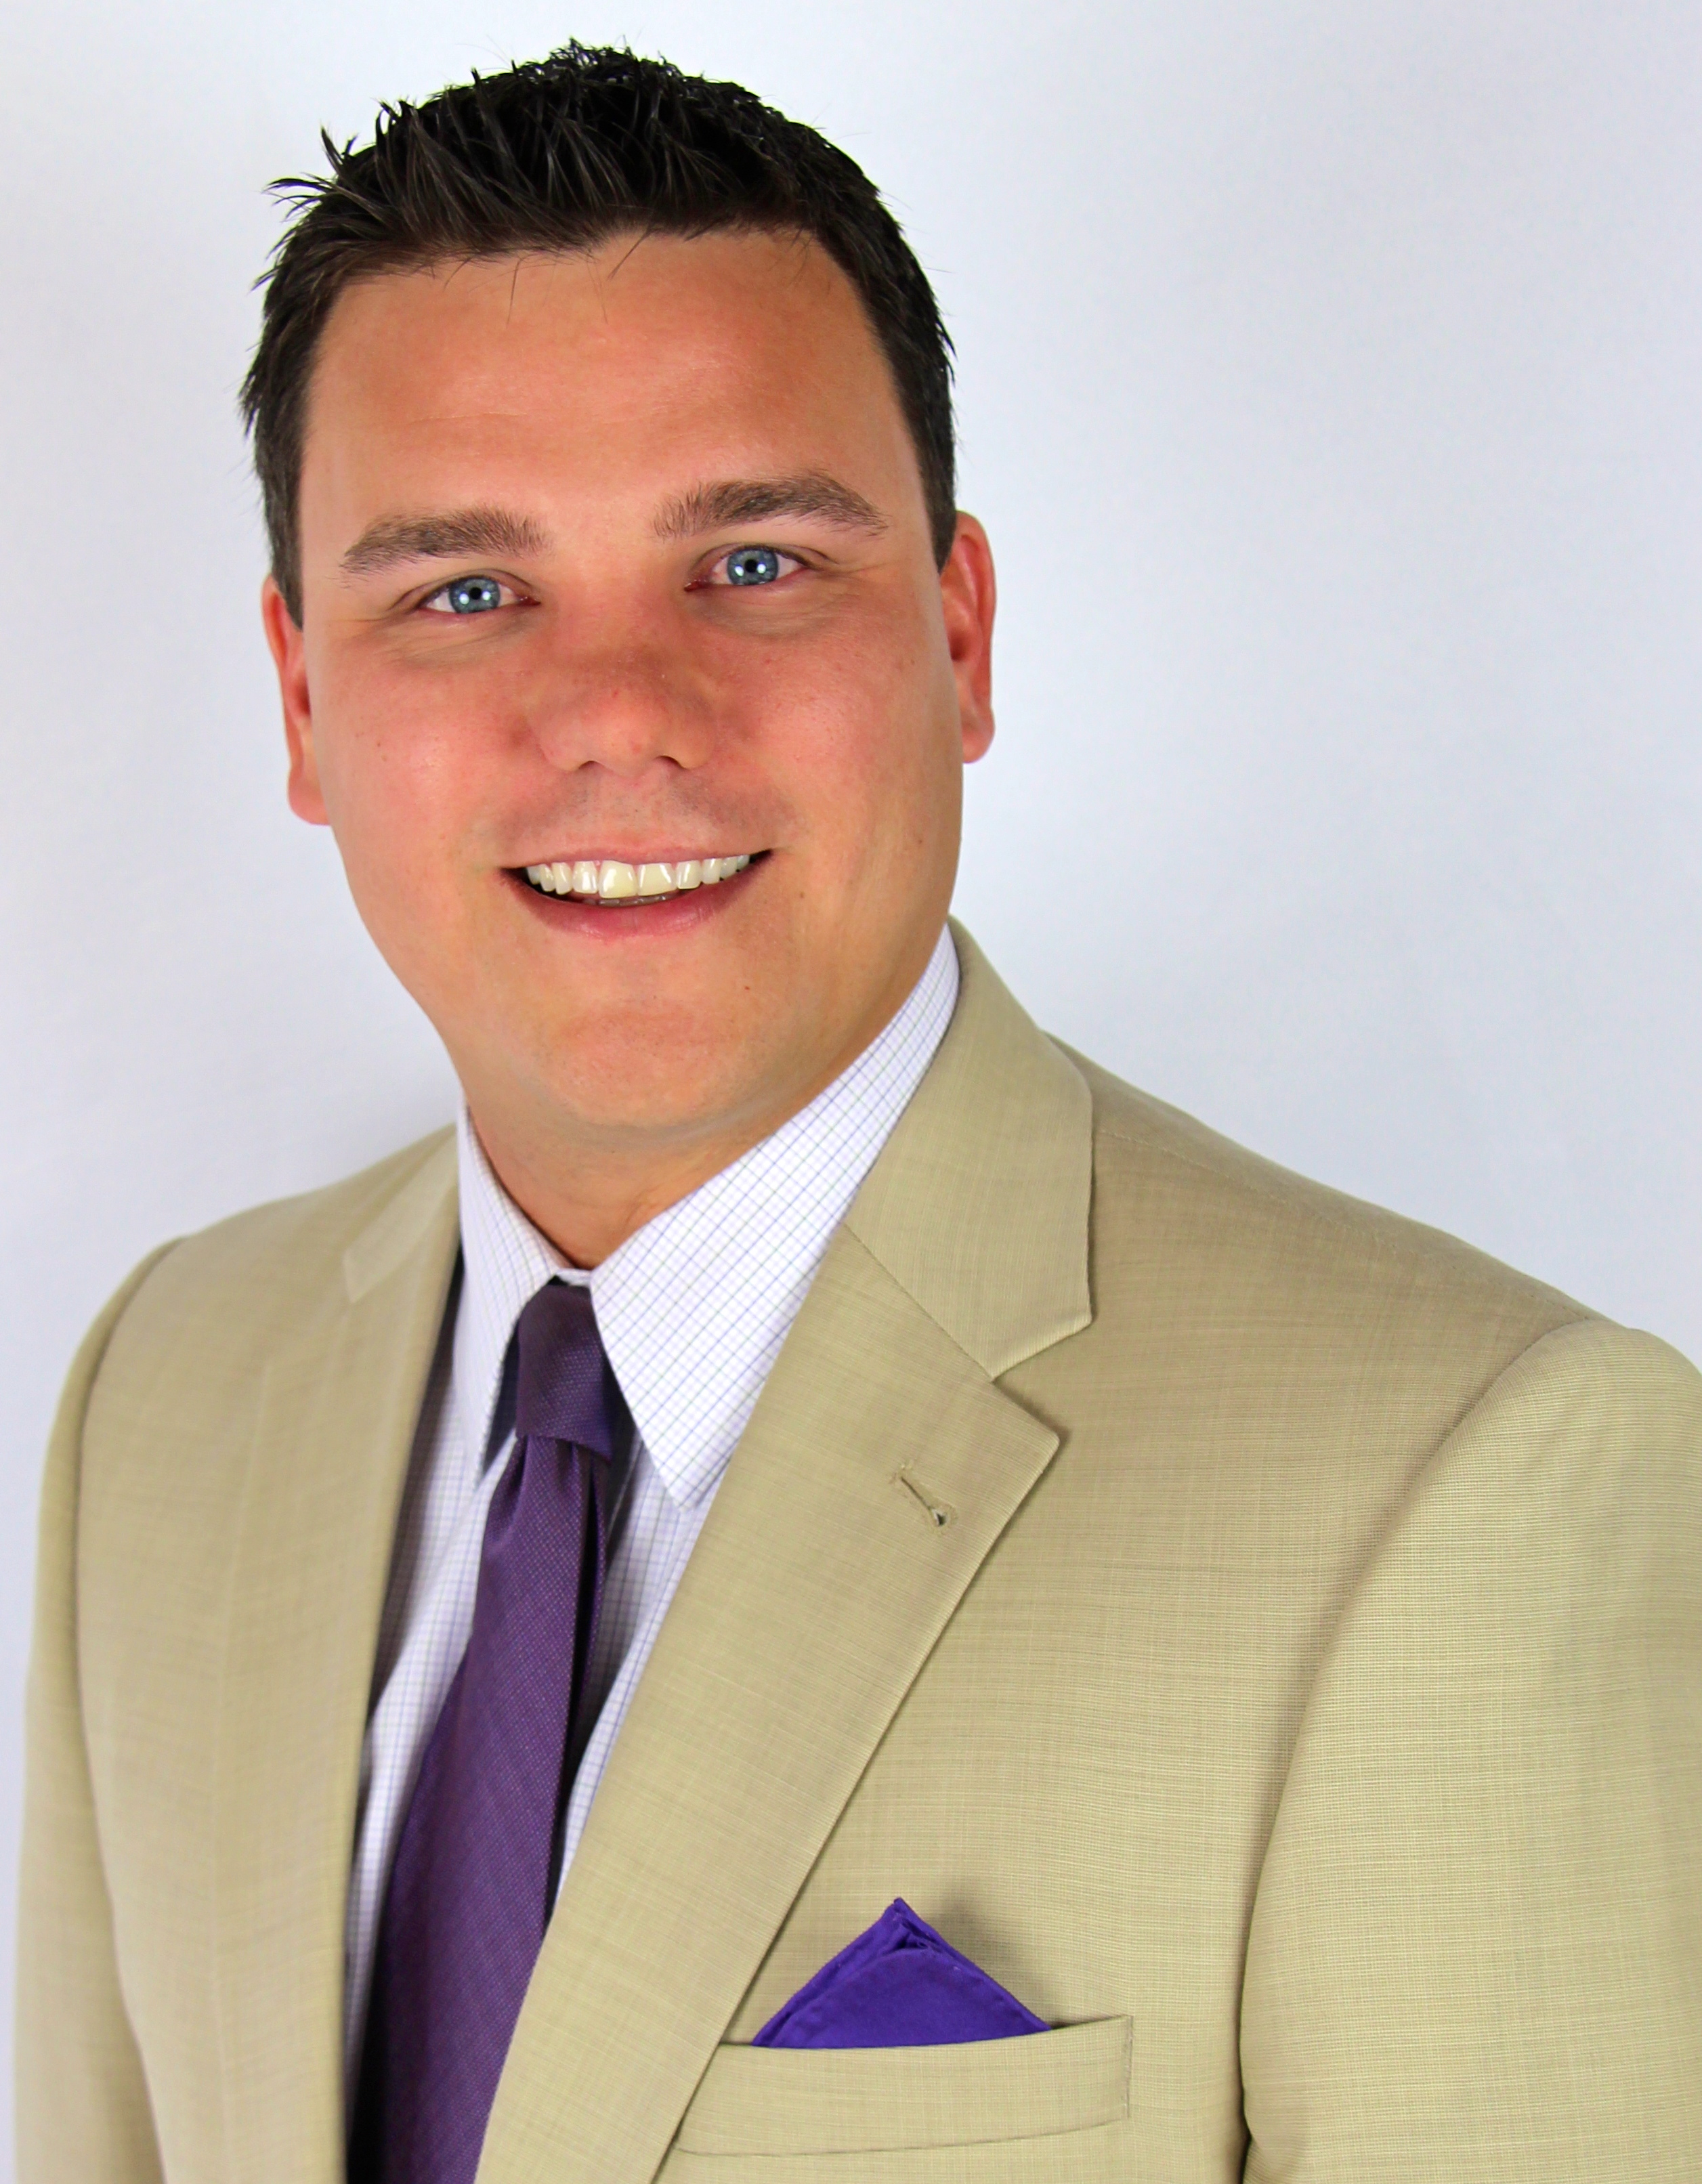 Justin Blews, financial advisor Lighthouse Point FL